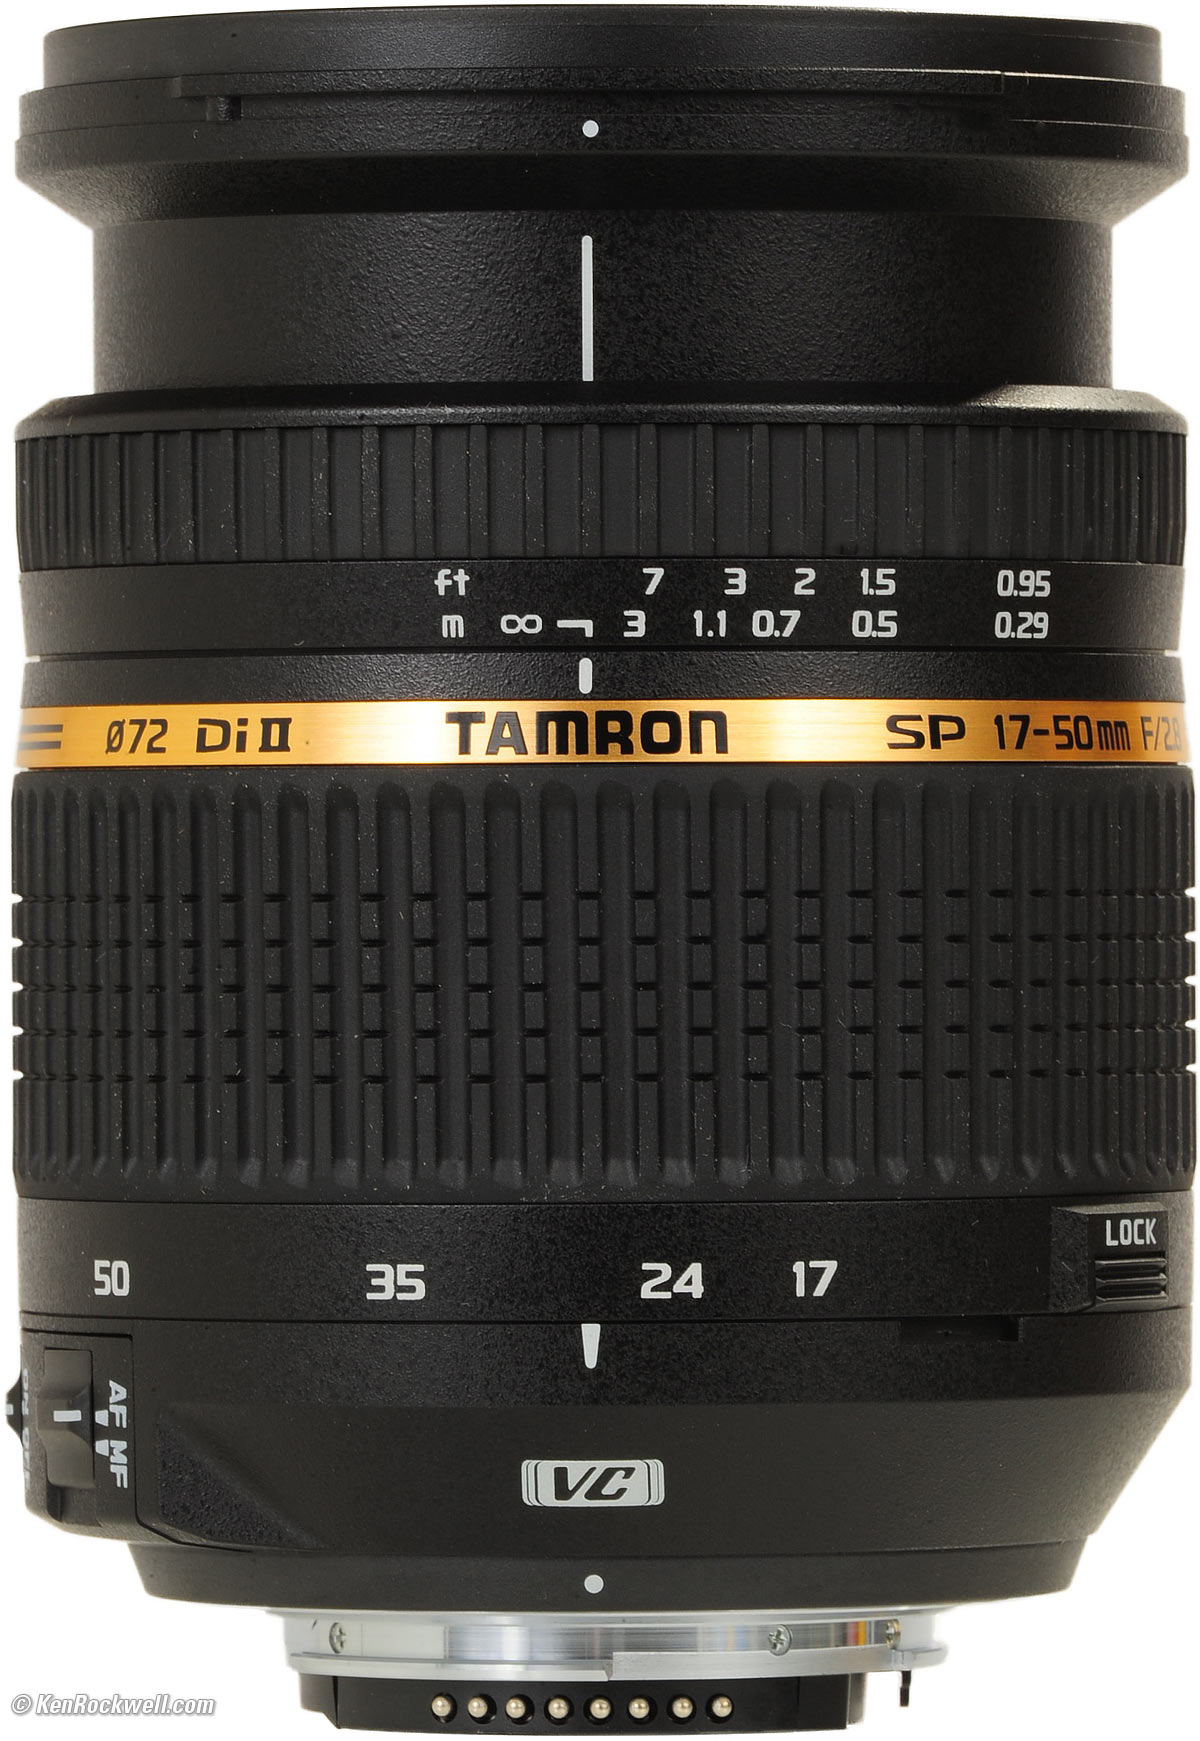 Tamron AF 17-50mm F2.8 XR Di II VC for Canon